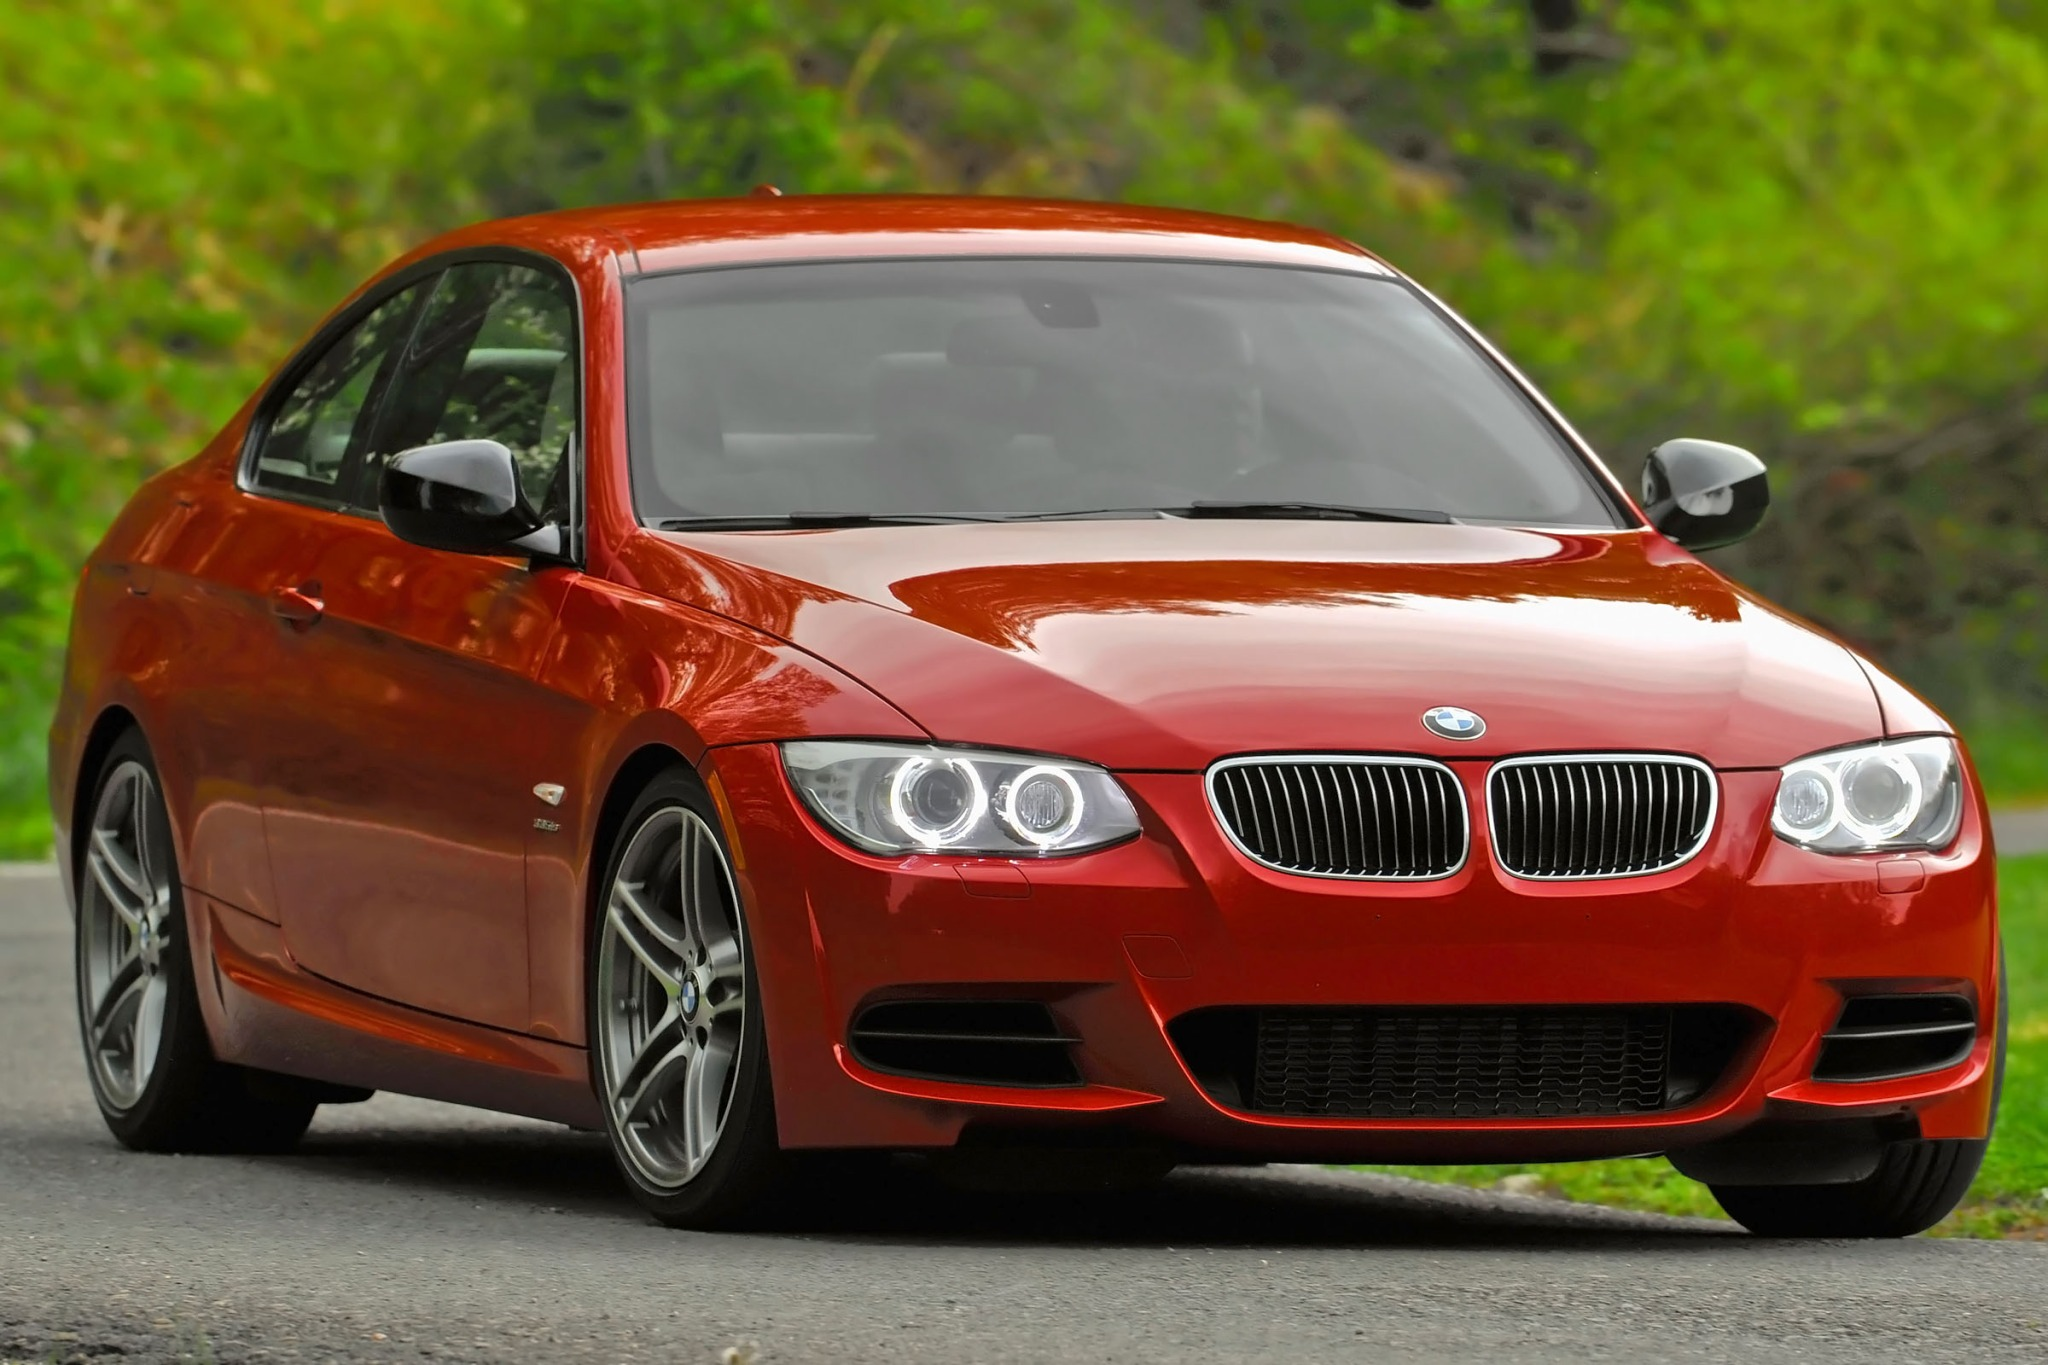 BMW 3 series 335is 2013 photo - 6